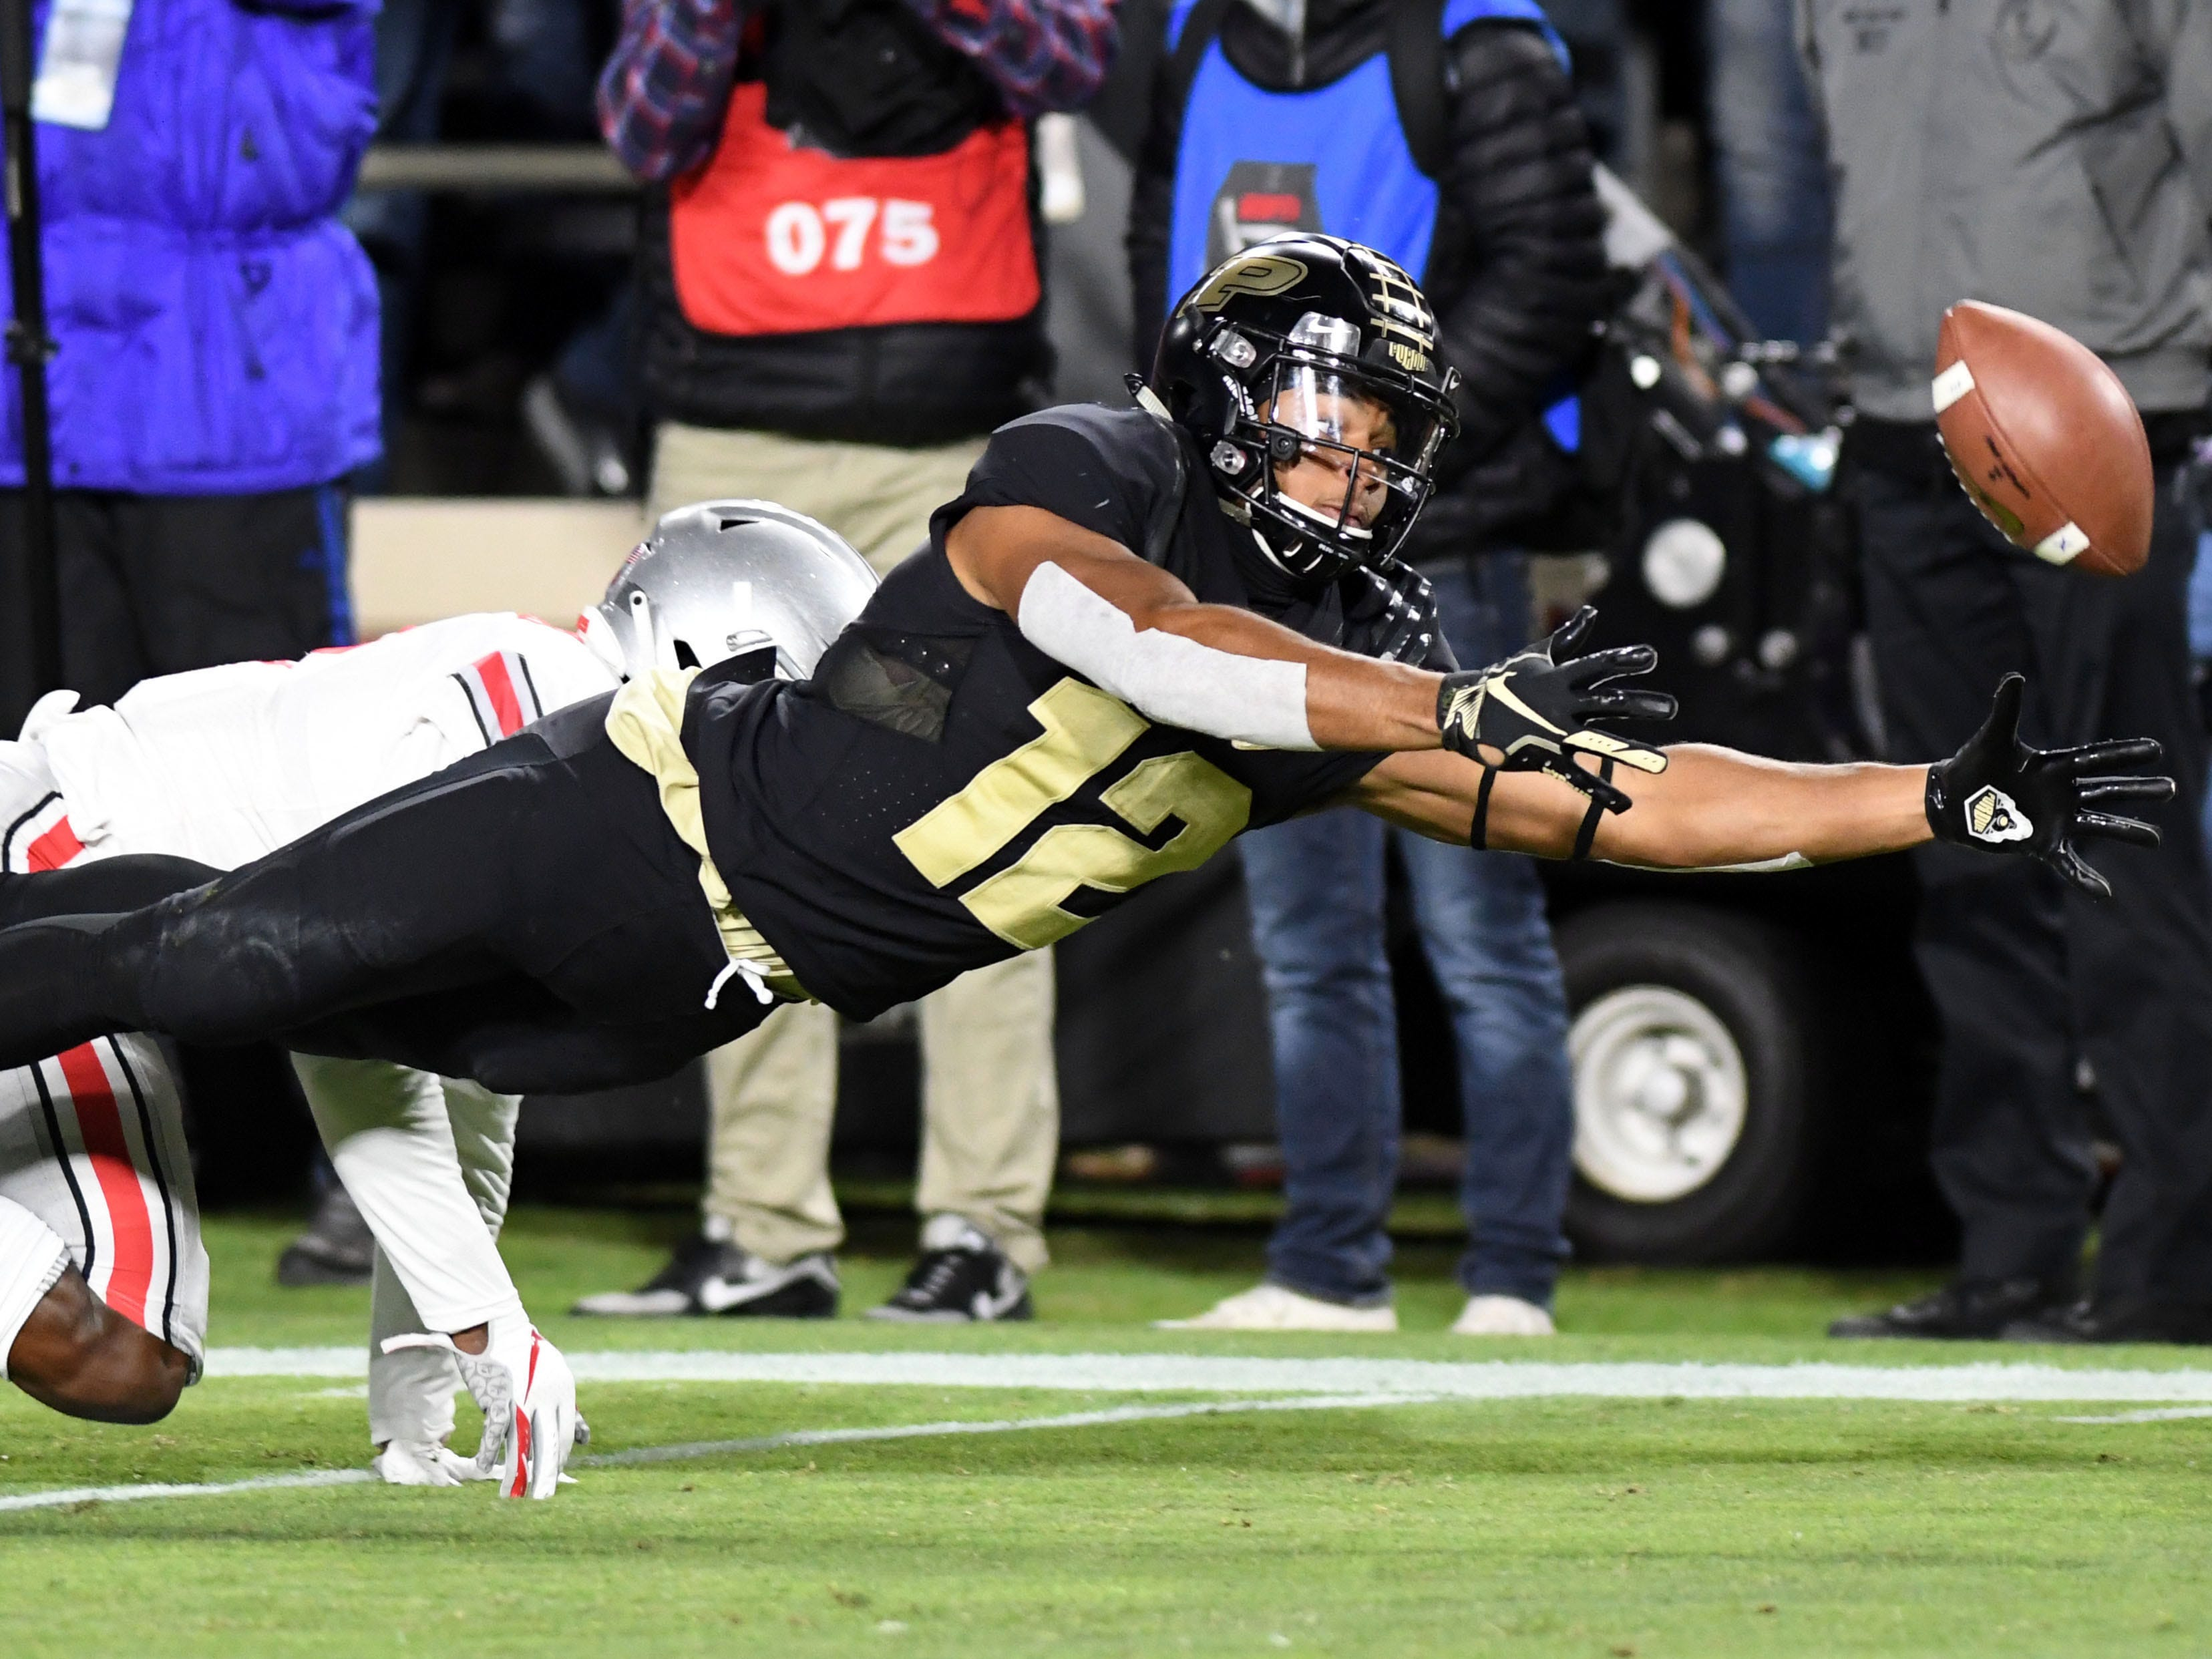 Purdue Boilermakers receiver Jared Sparks (12) dives for a pass in the first half against the Ohio State Buckeyes at Ross-Ade Stadium.